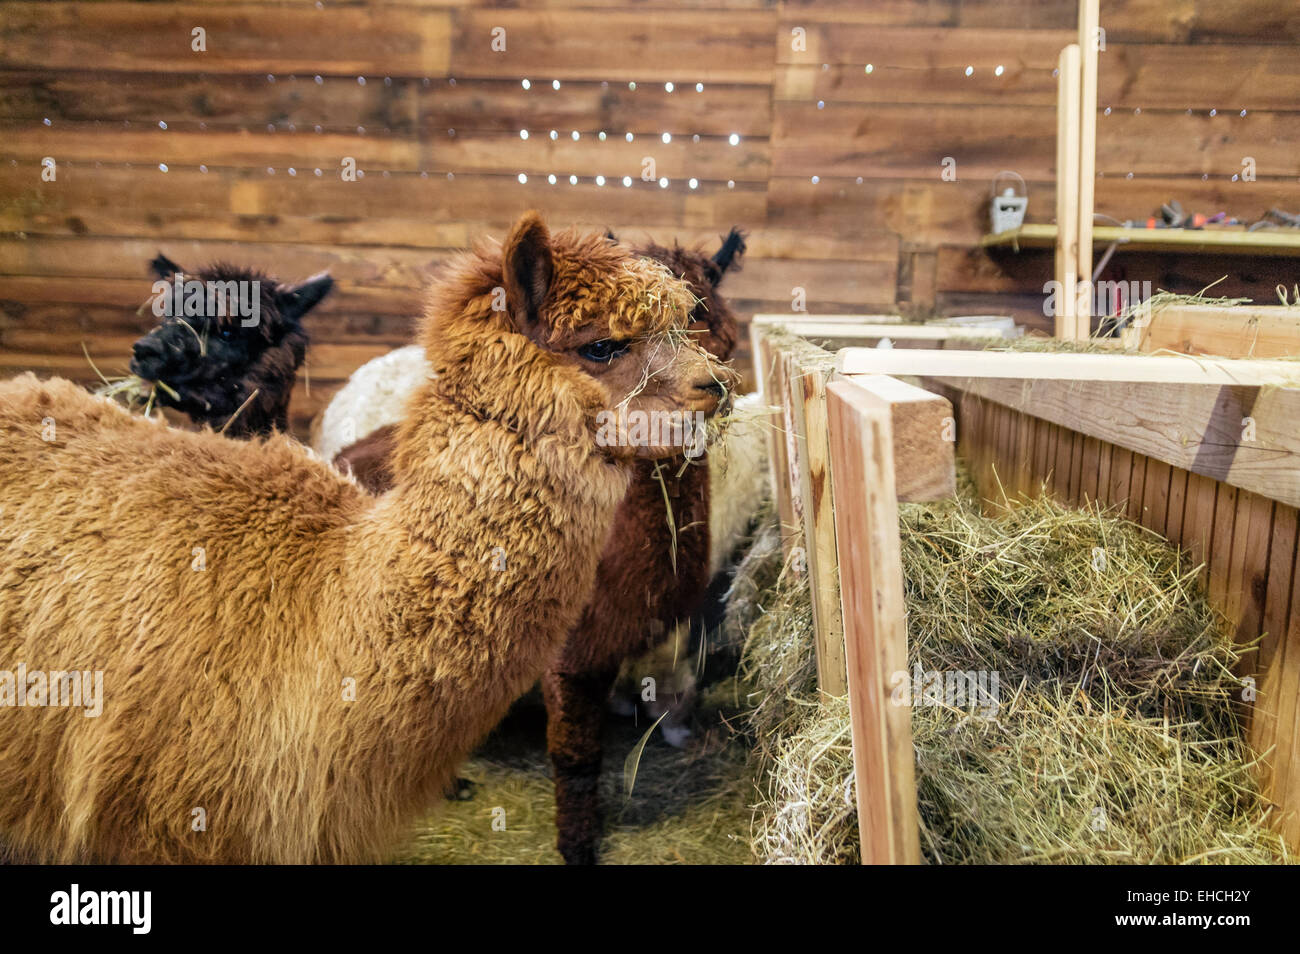 Brown alpaca in a stable - Stock Image